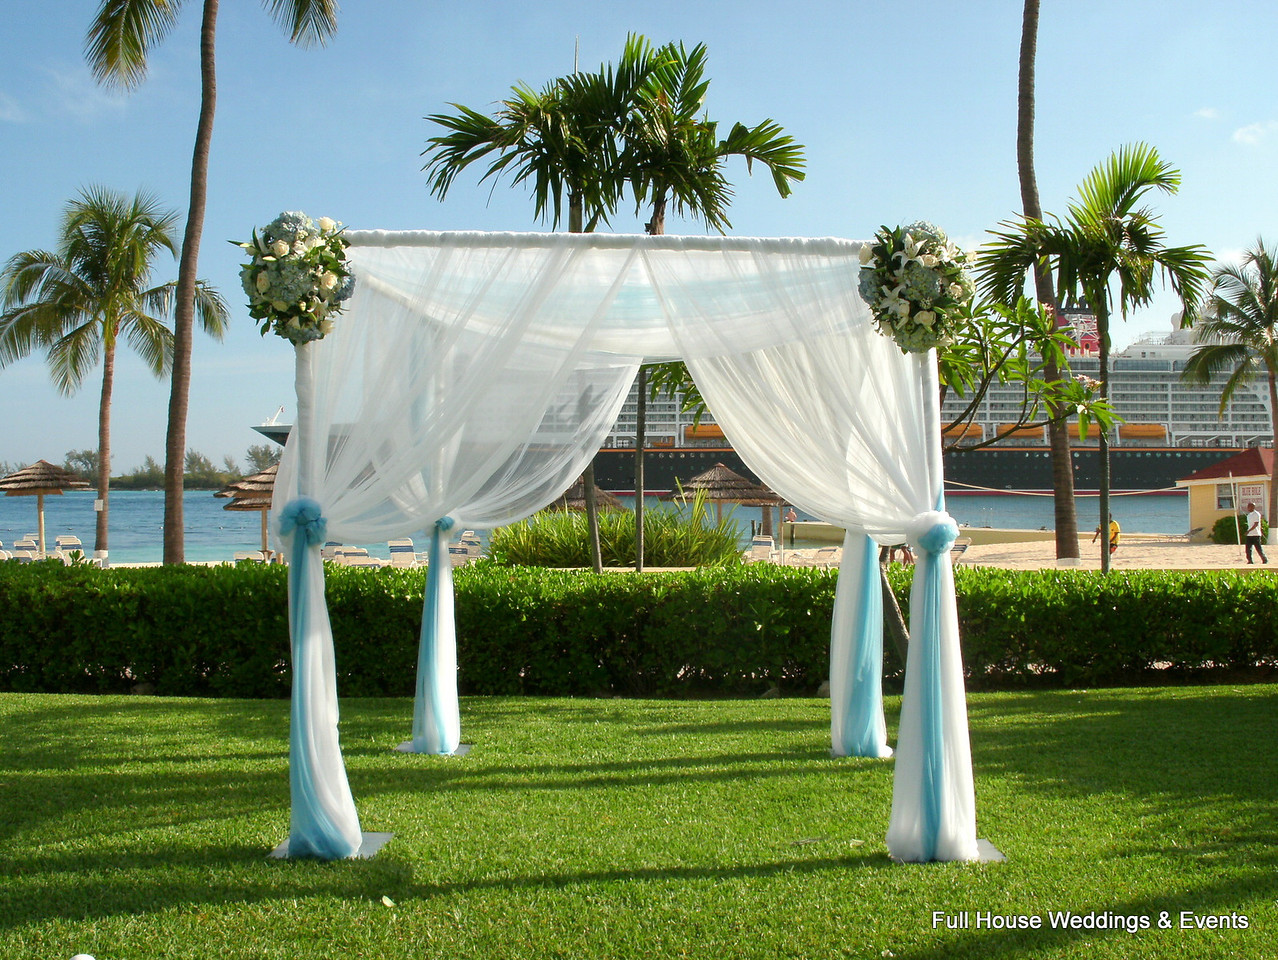 Ceremony Arbor - draped in sheer white and tiffany blue fabric with floral clusters.